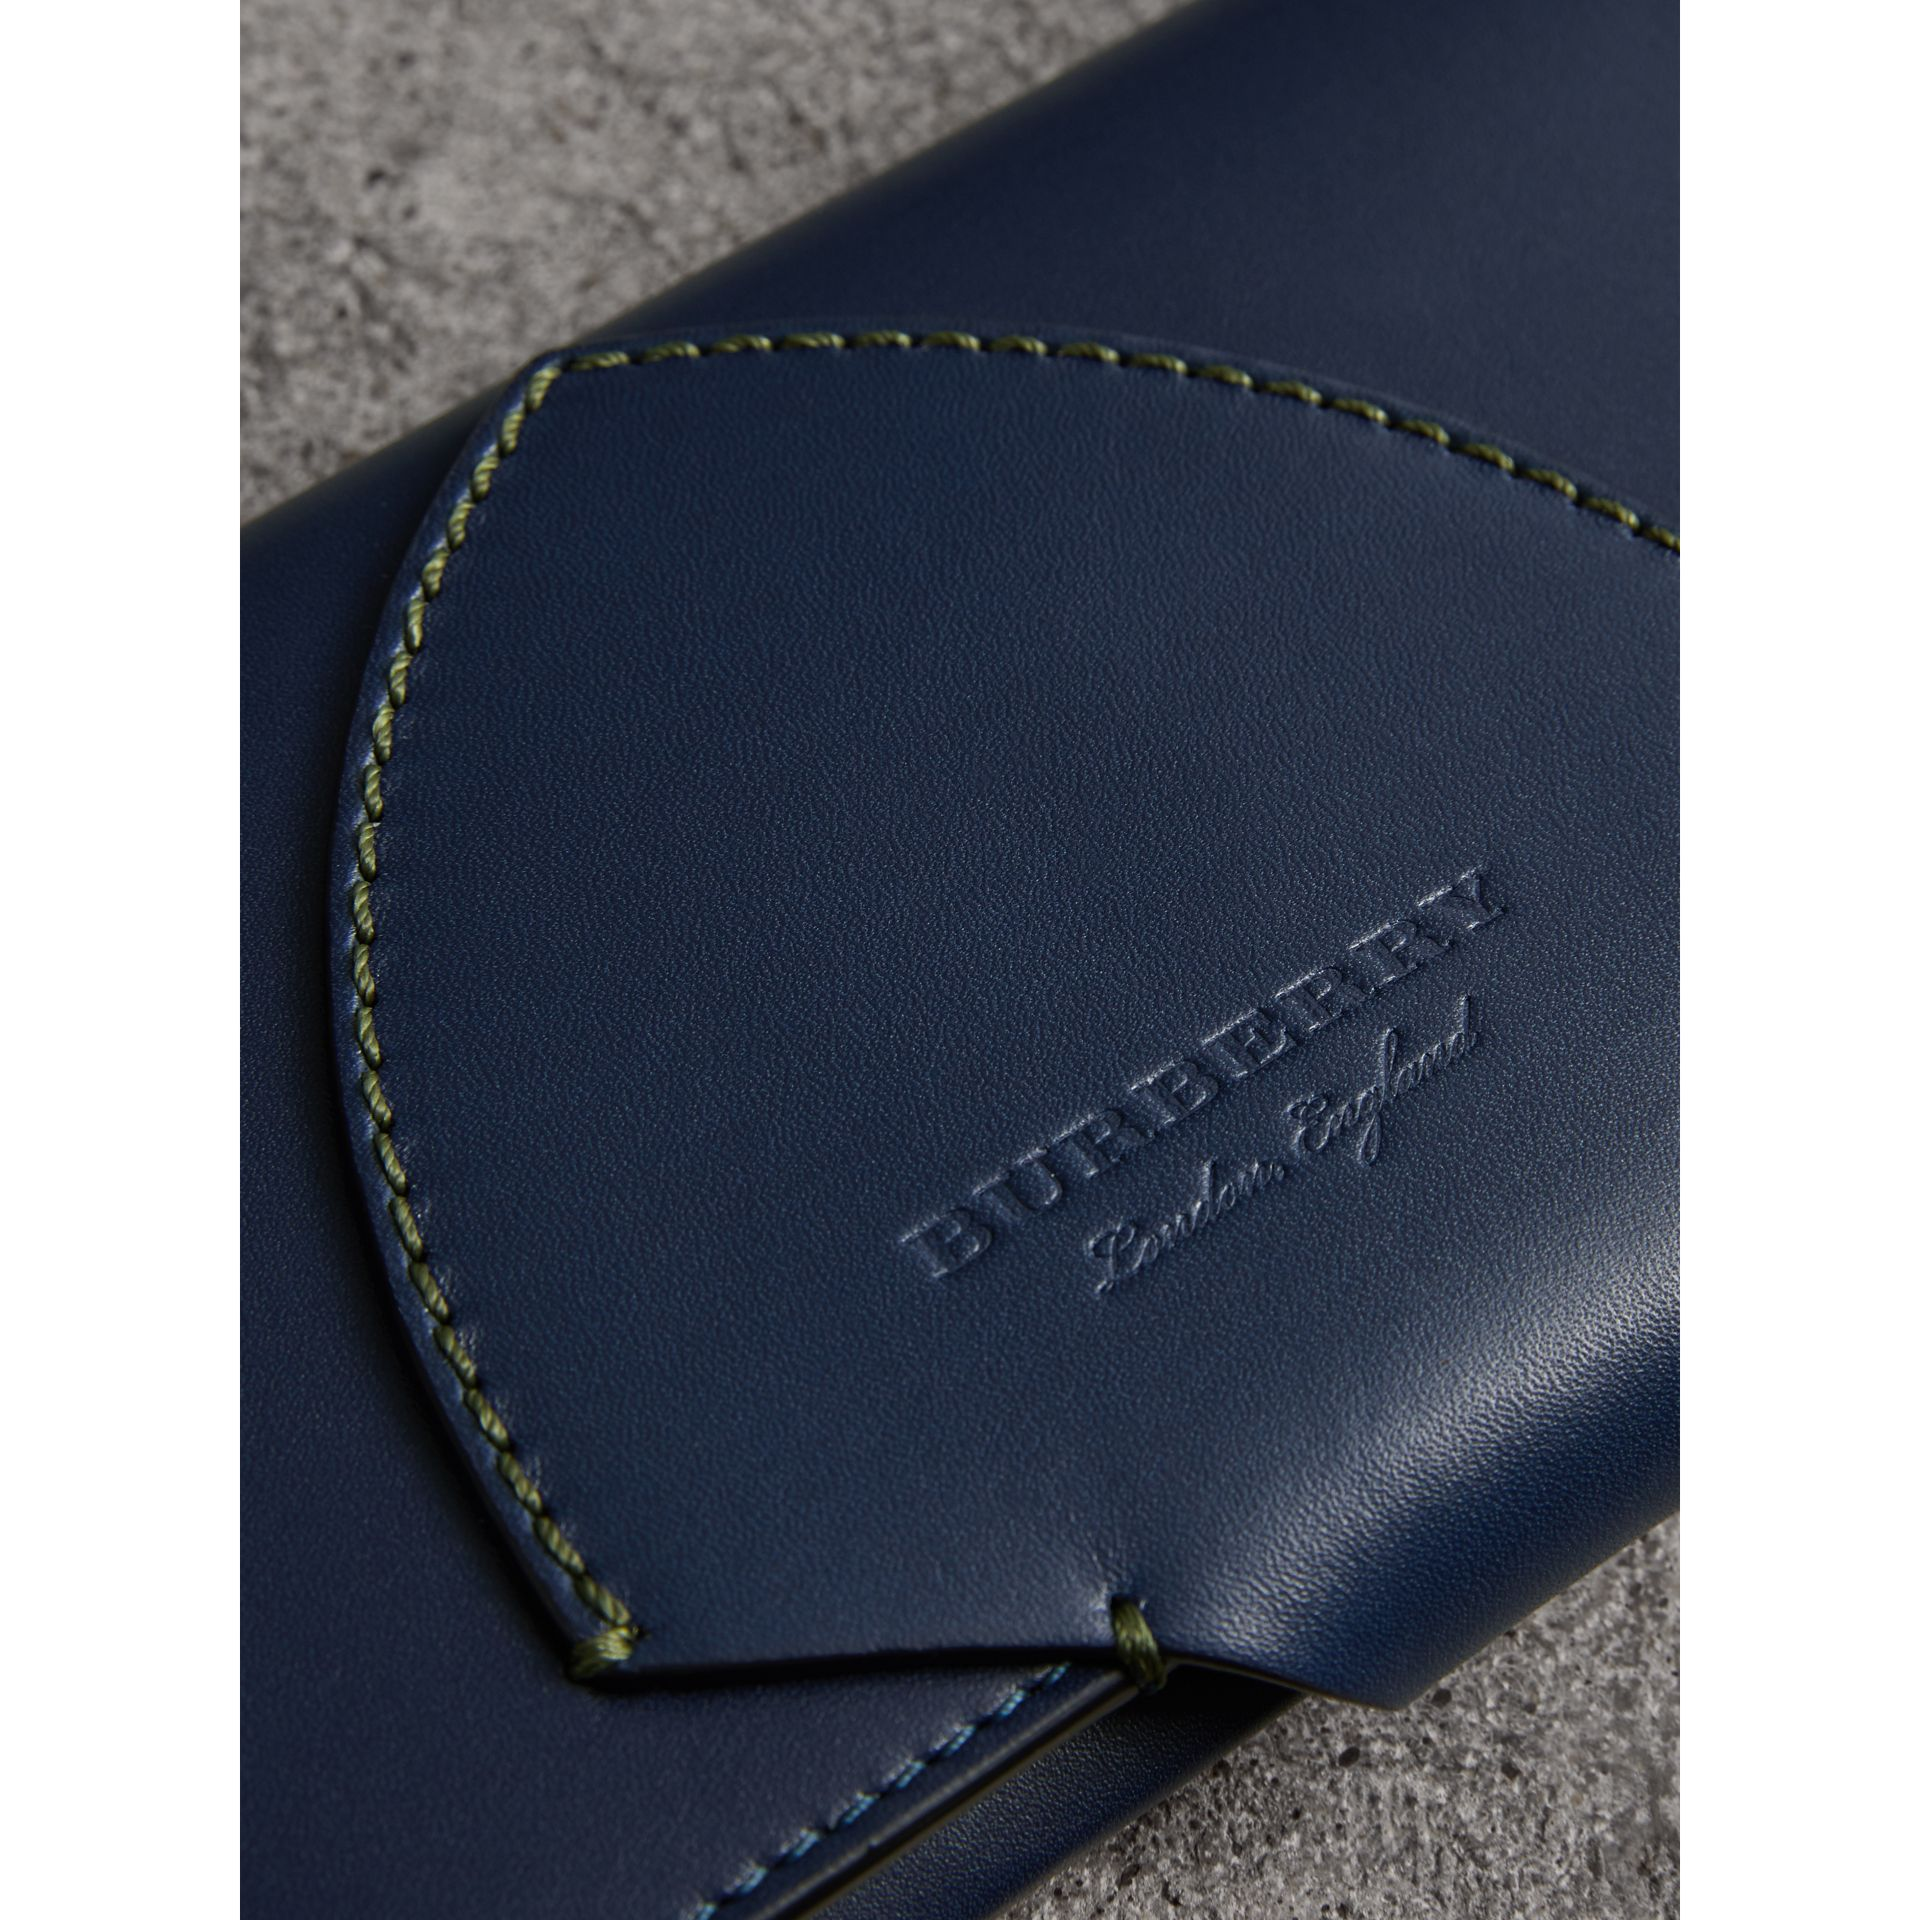 Equestrian Shield Two-tone Leather Continental Wallet in Mid Indigo - Women | Burberry United Kingdom - gallery image 1